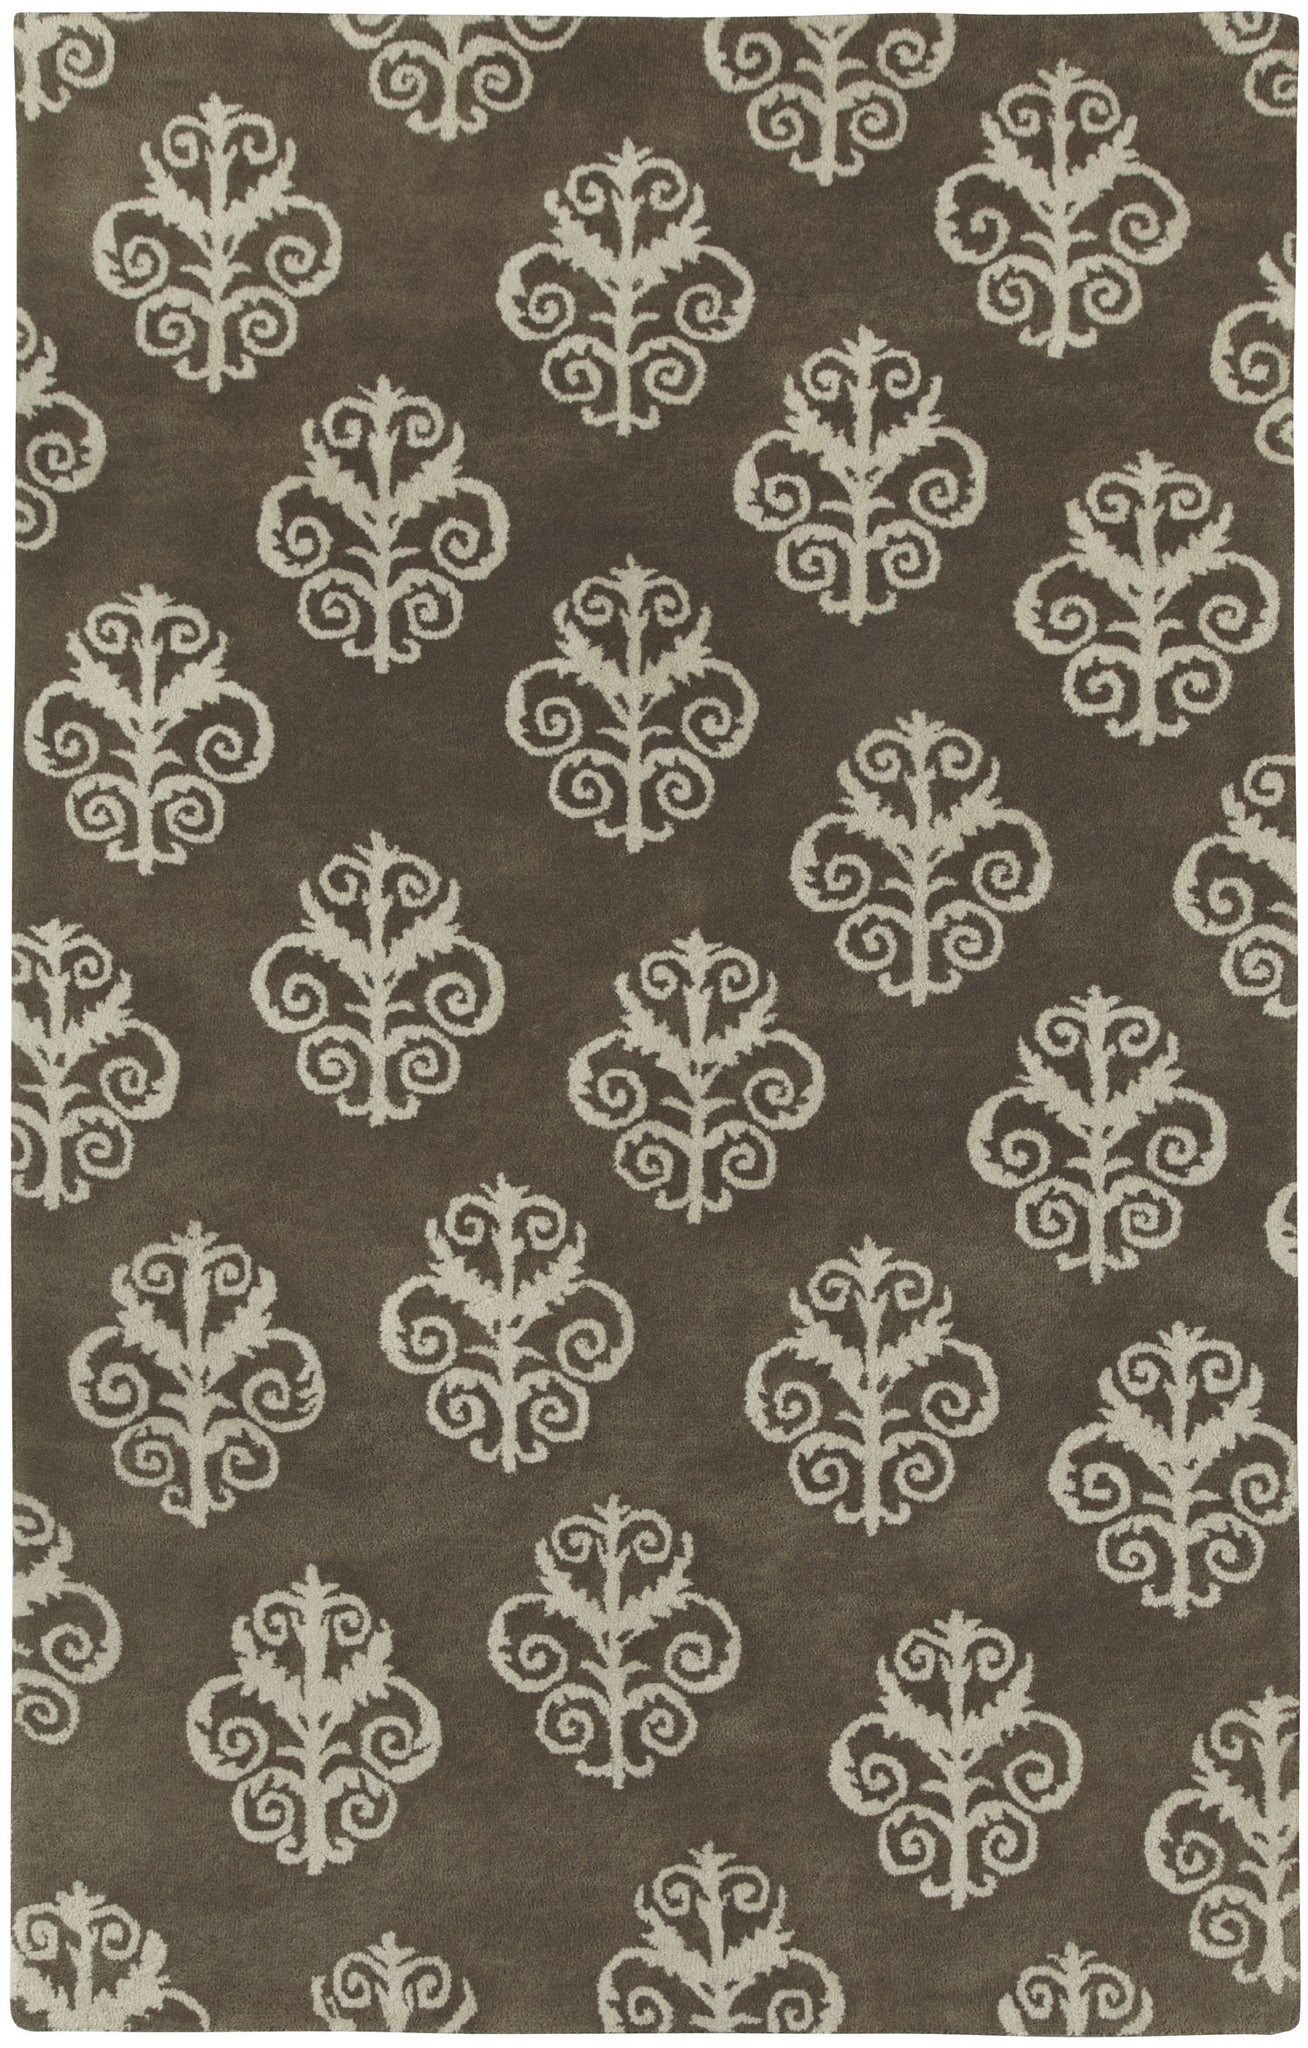 Capel Cornice 3871 Brown 700 Area Rug by Biltmore main image